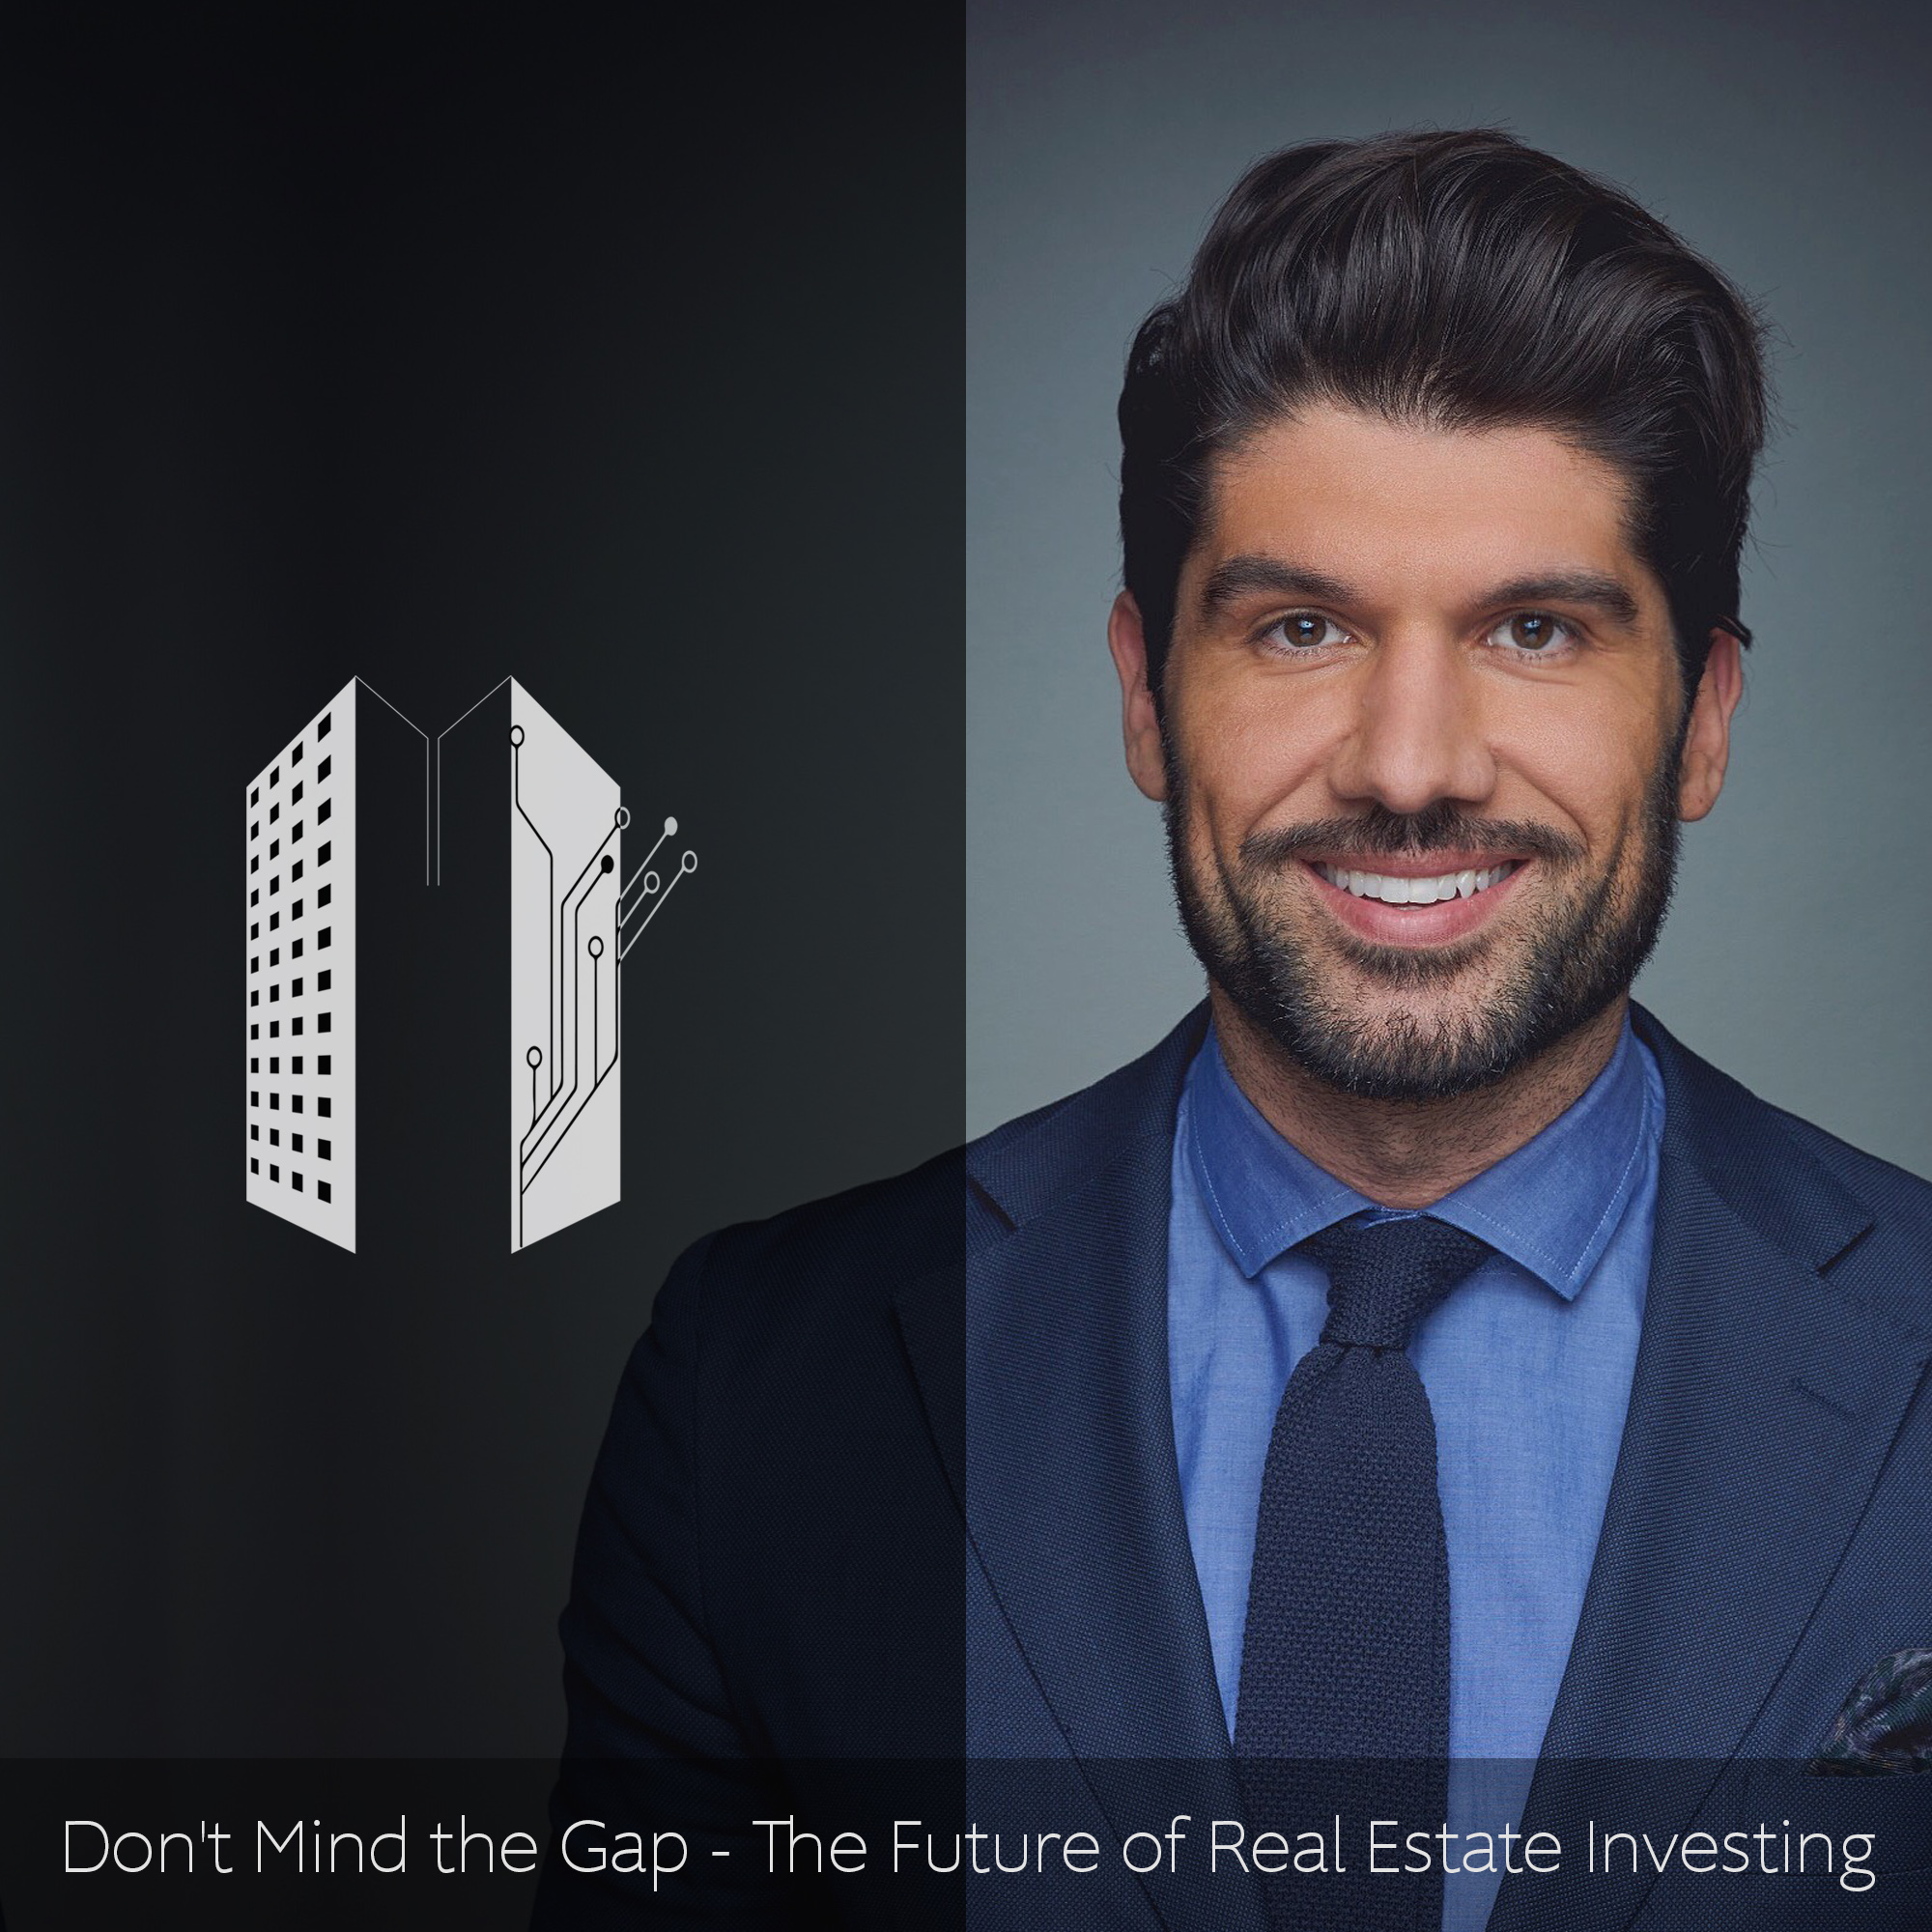 Don't Mind the Gap: The Future of Real Estate Investing